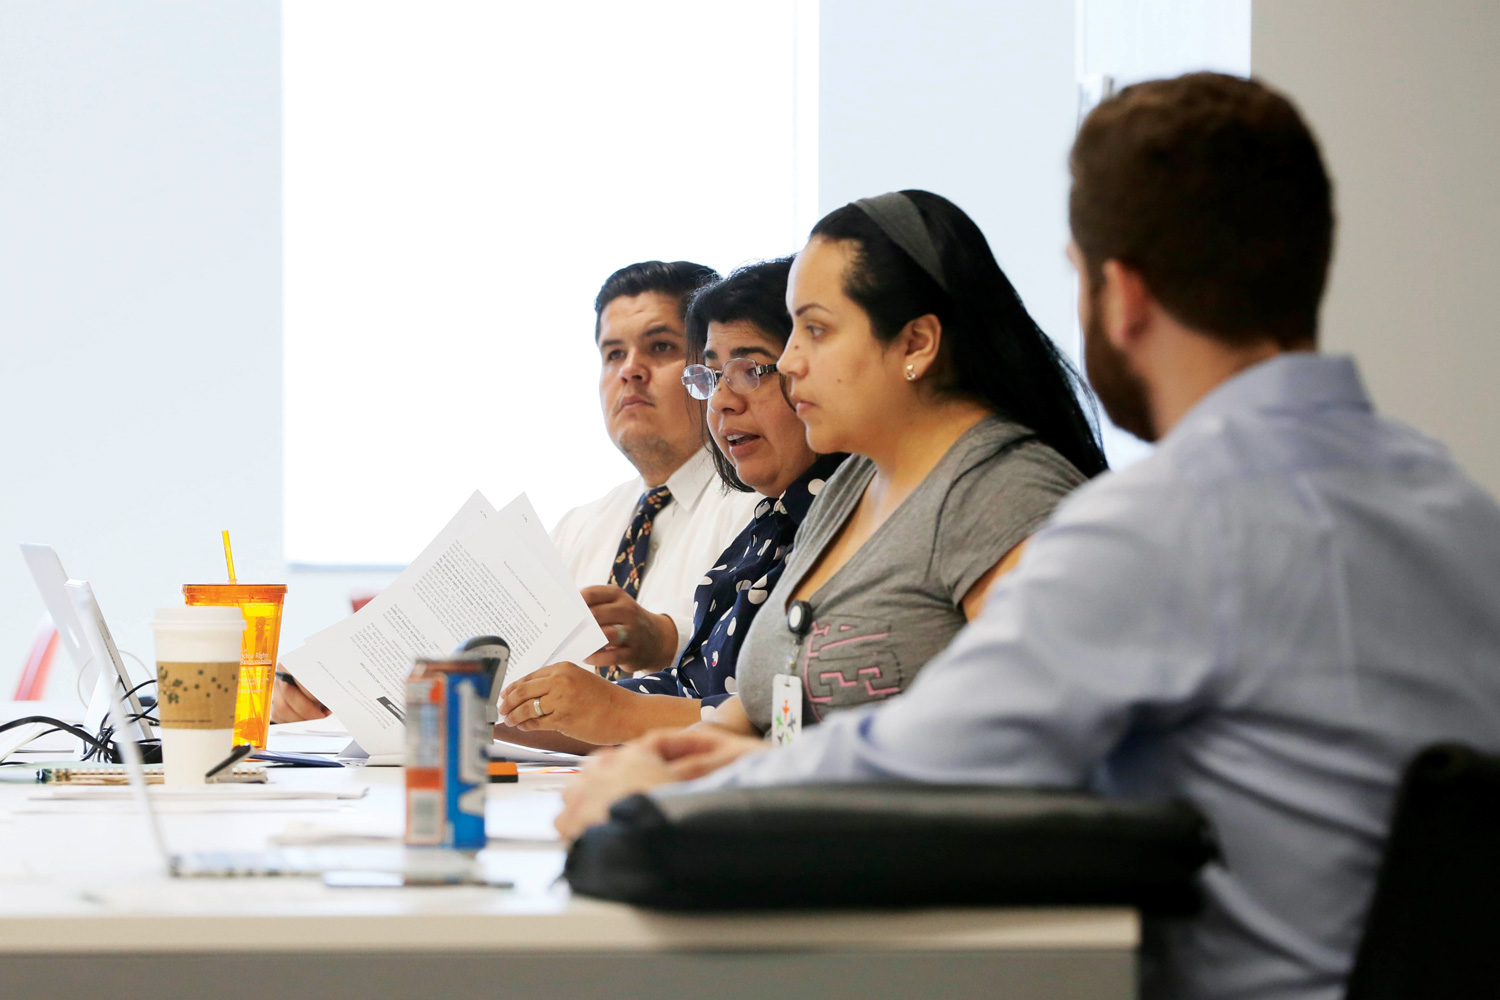 immigration in canada and the need for multicultural education It's well-known that canada is an outlier among immigrant nations, but it is nonetheless interesting to consider in reference to the ongoing and heated debate about immigration in the united states.